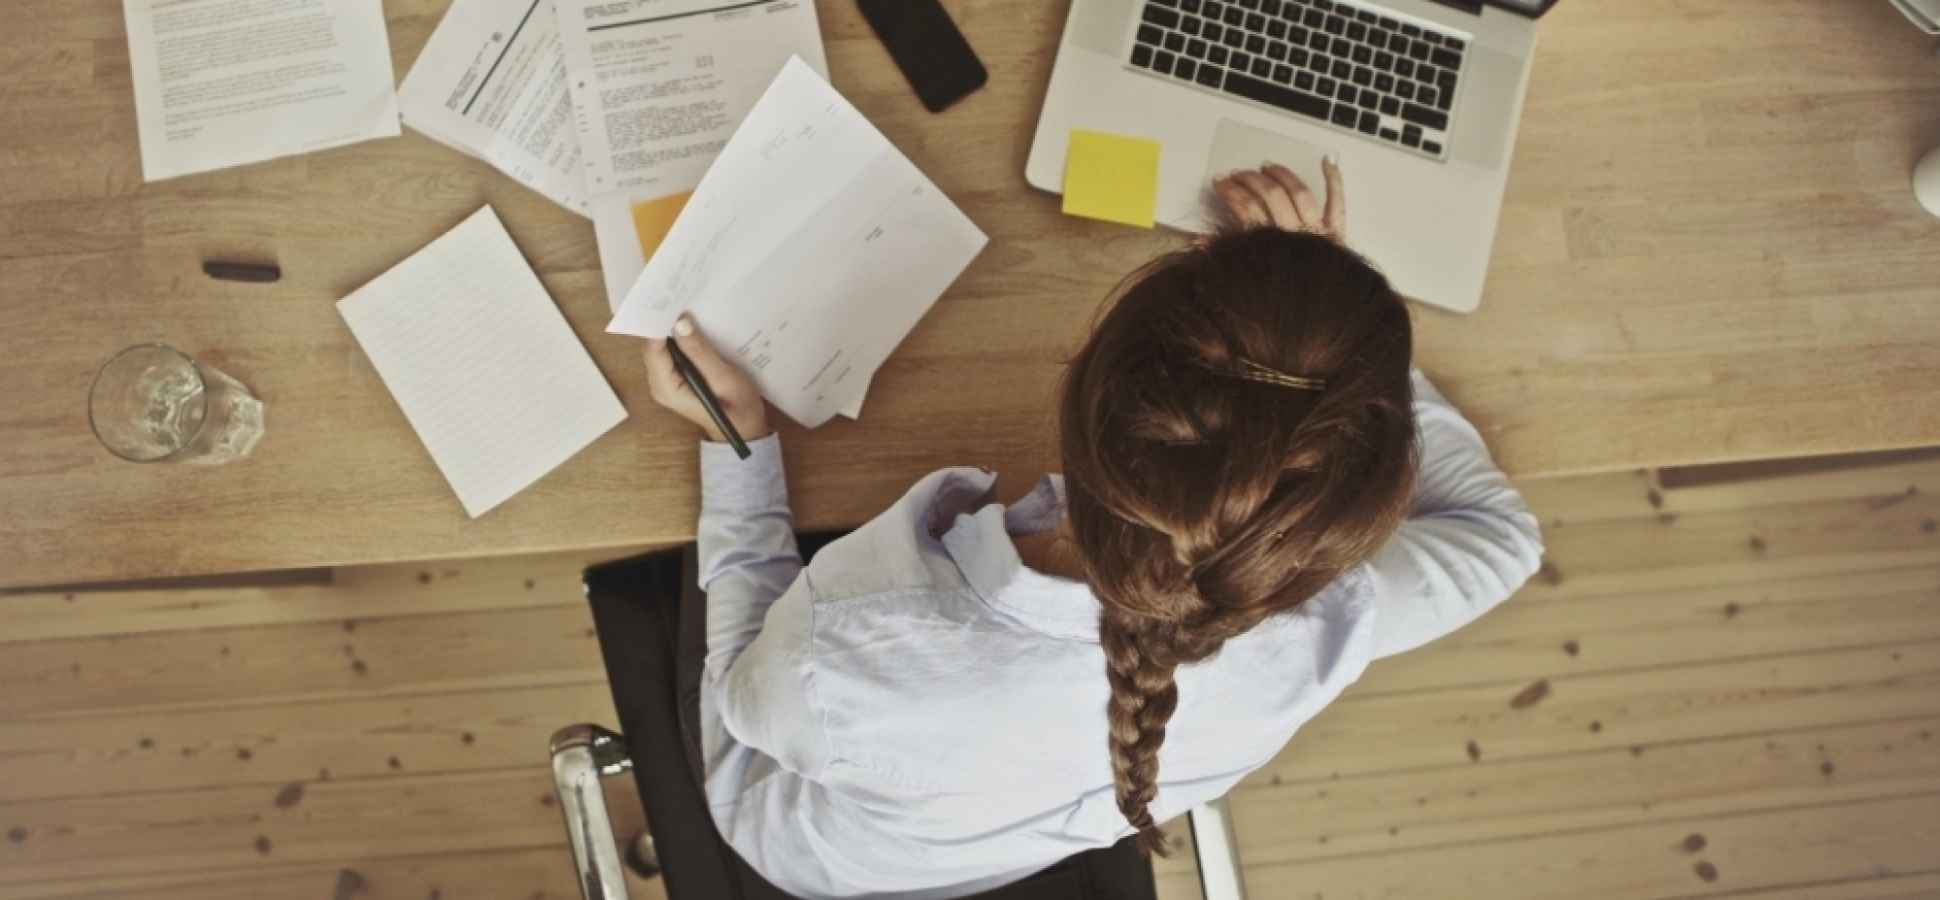 8 Perks That Smart Solopreneurs Make Sure to Give Themselves